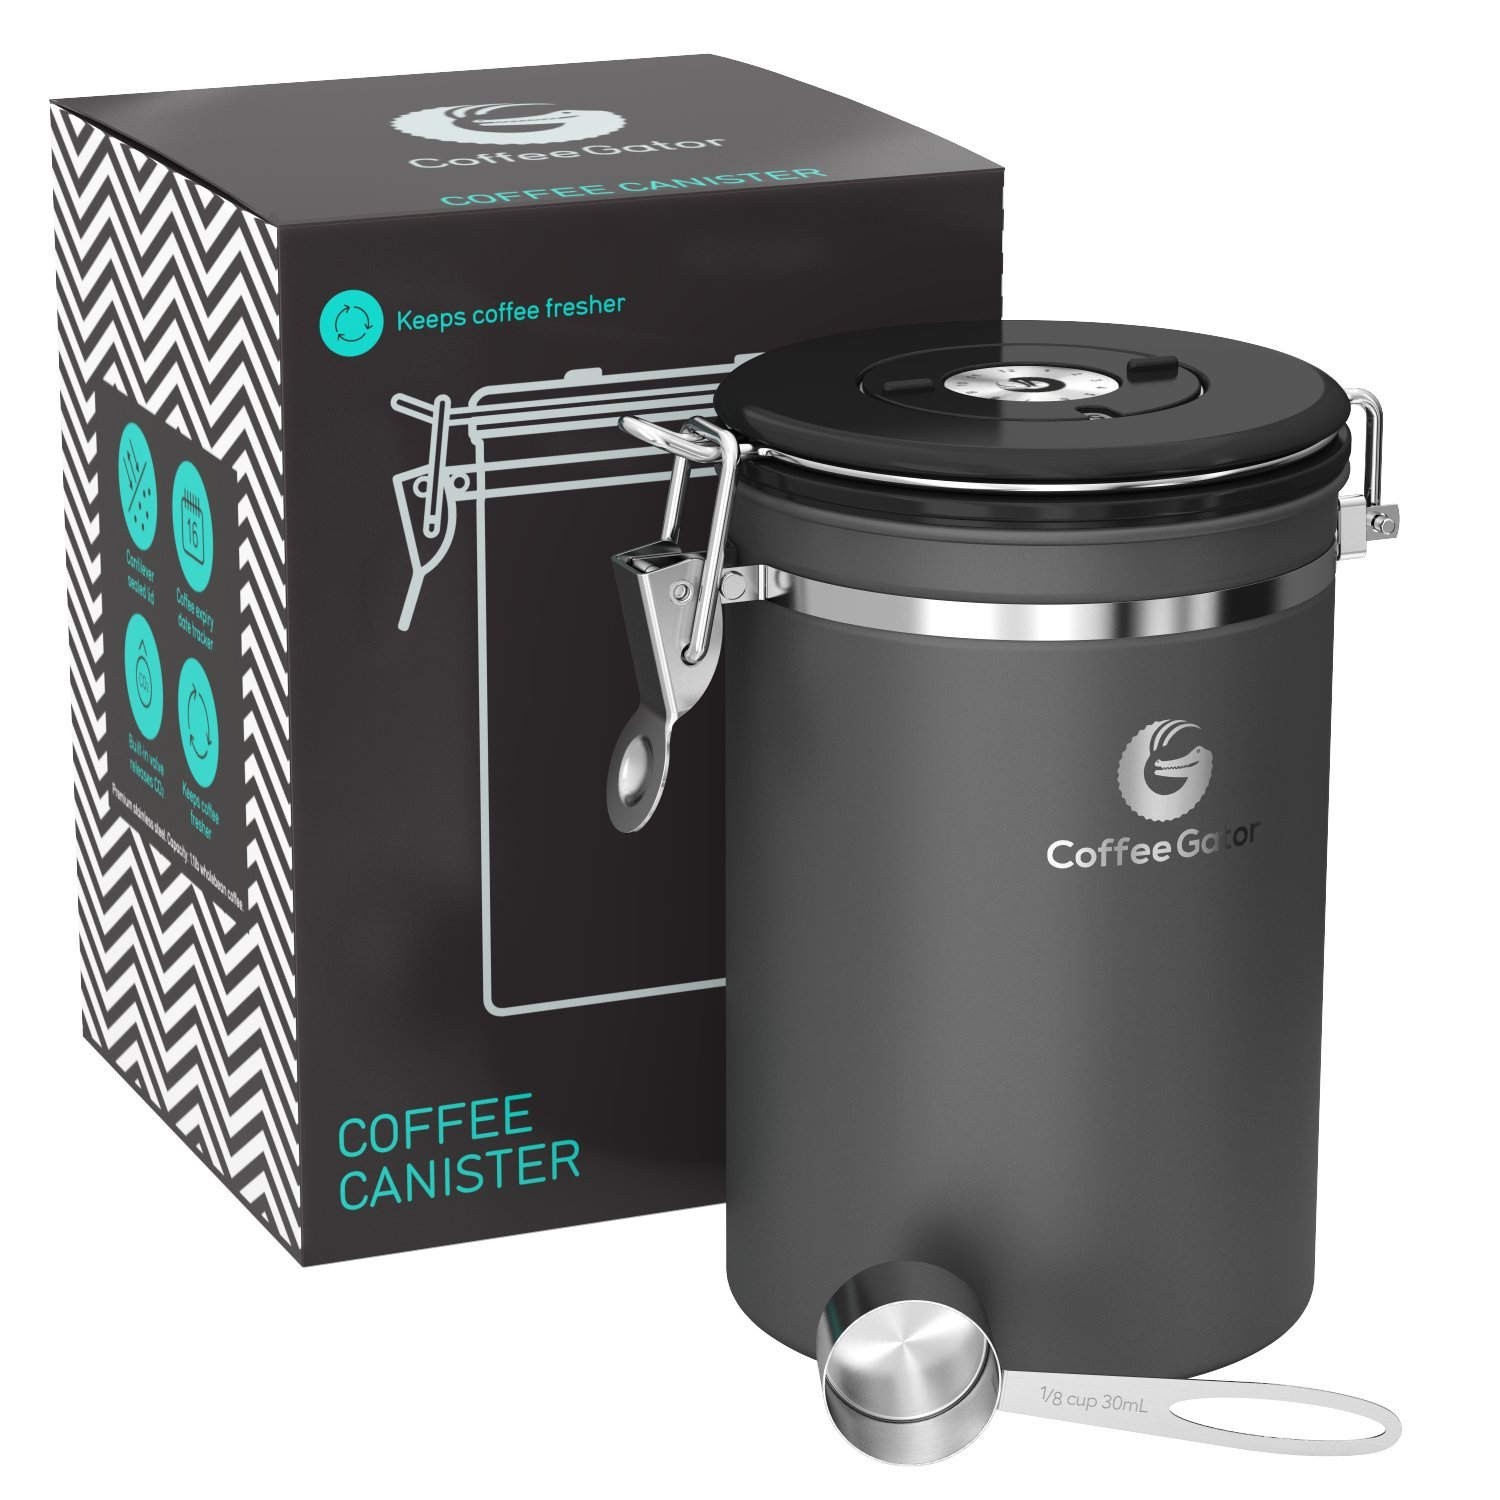 Coffee Gator Stainless Steel Container - Canister with co2 Valve and Scoop (Grey, Large) by Coffee Gator (Image #1)